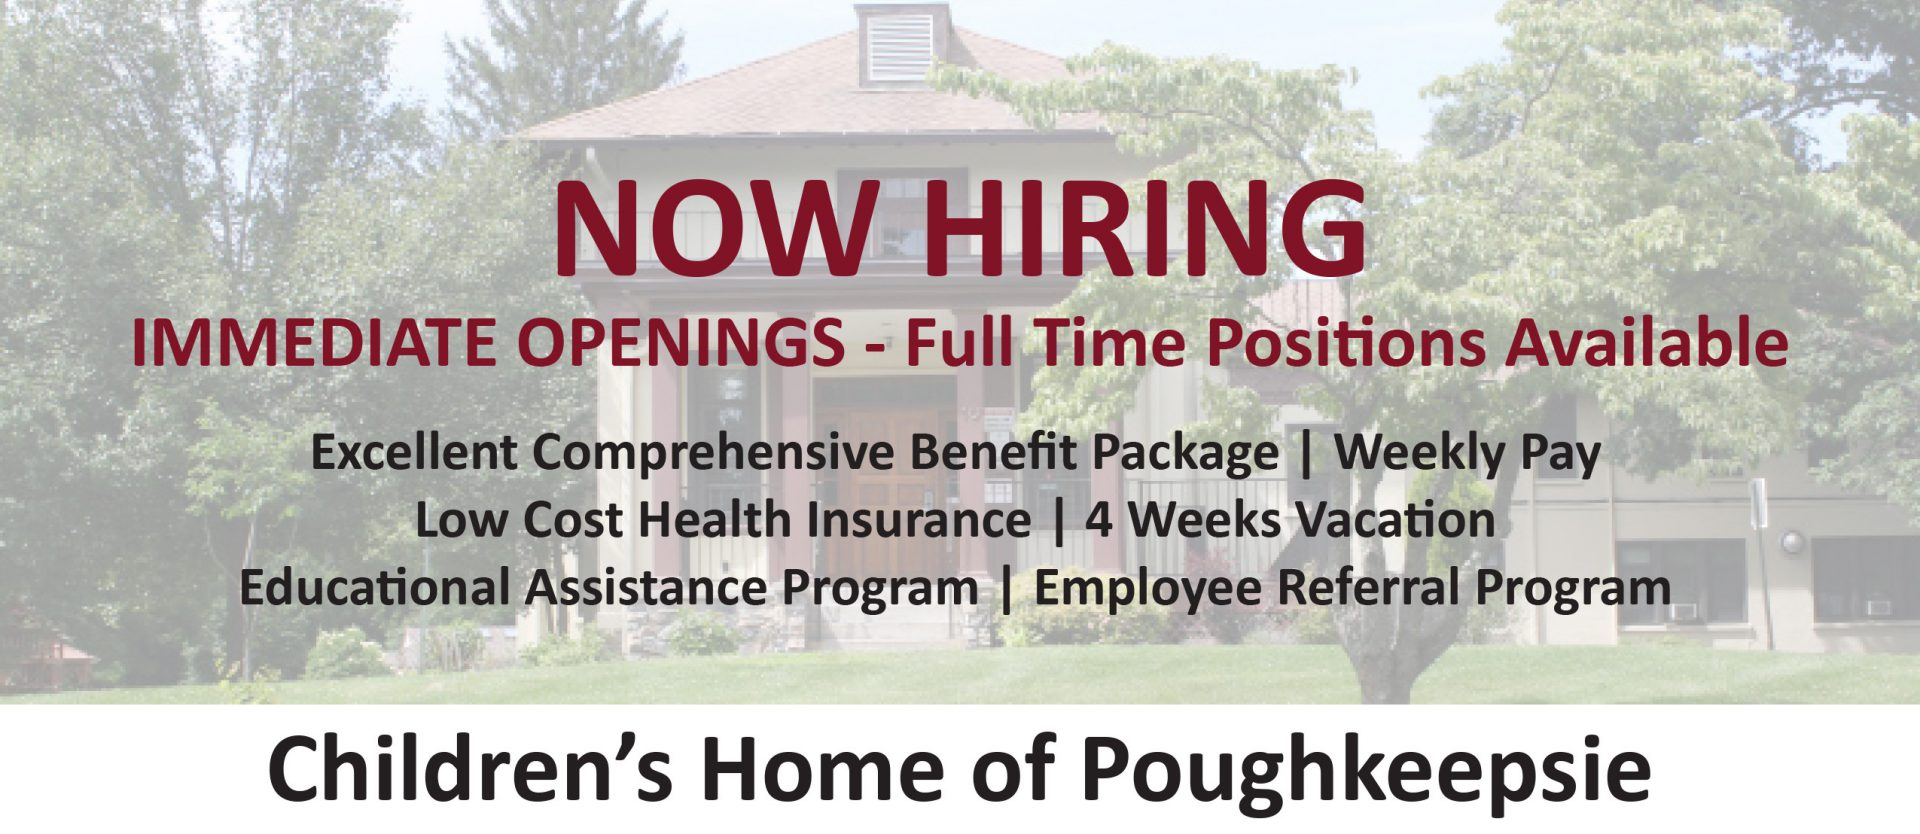 Image that shows the Children's Home had immediate openings and is hiring